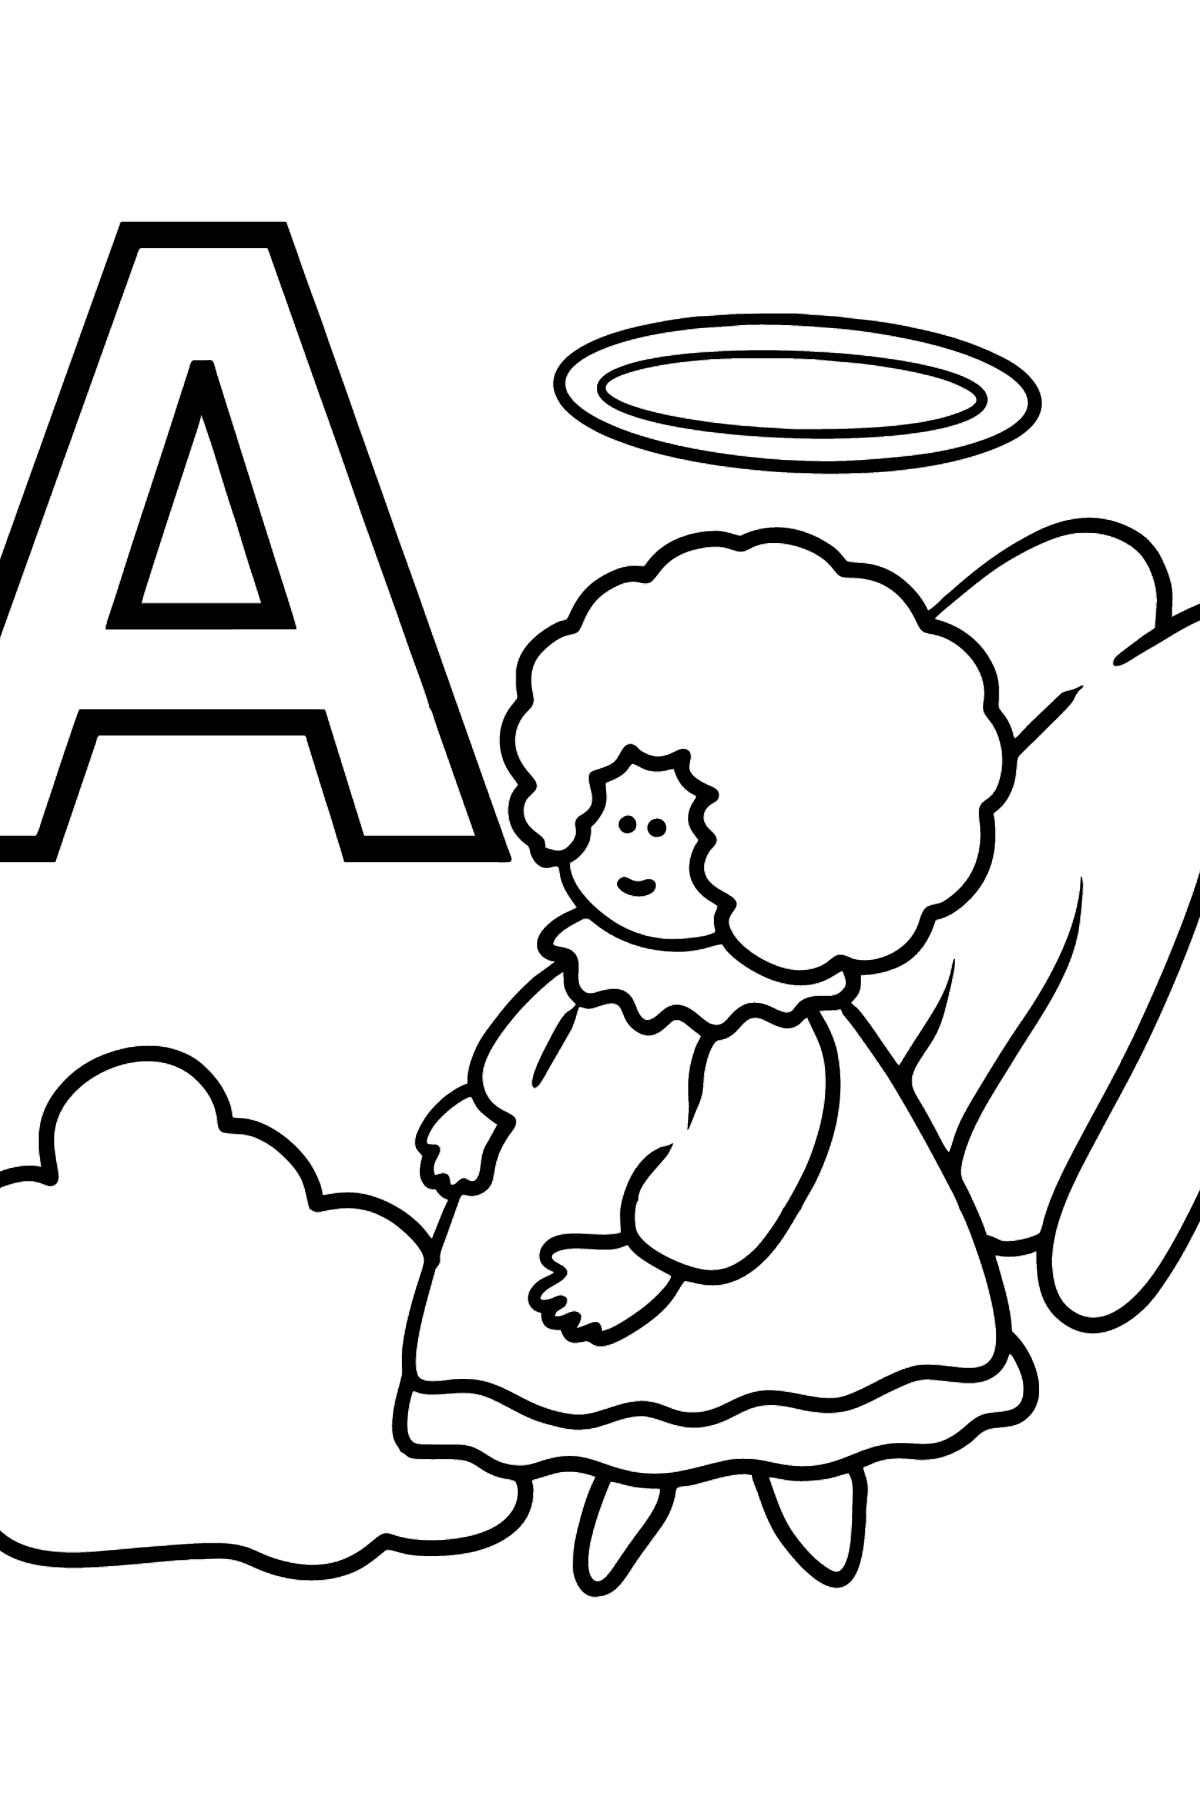 French Letter A coloring pages - ANGE - Coloring Pages for Kids